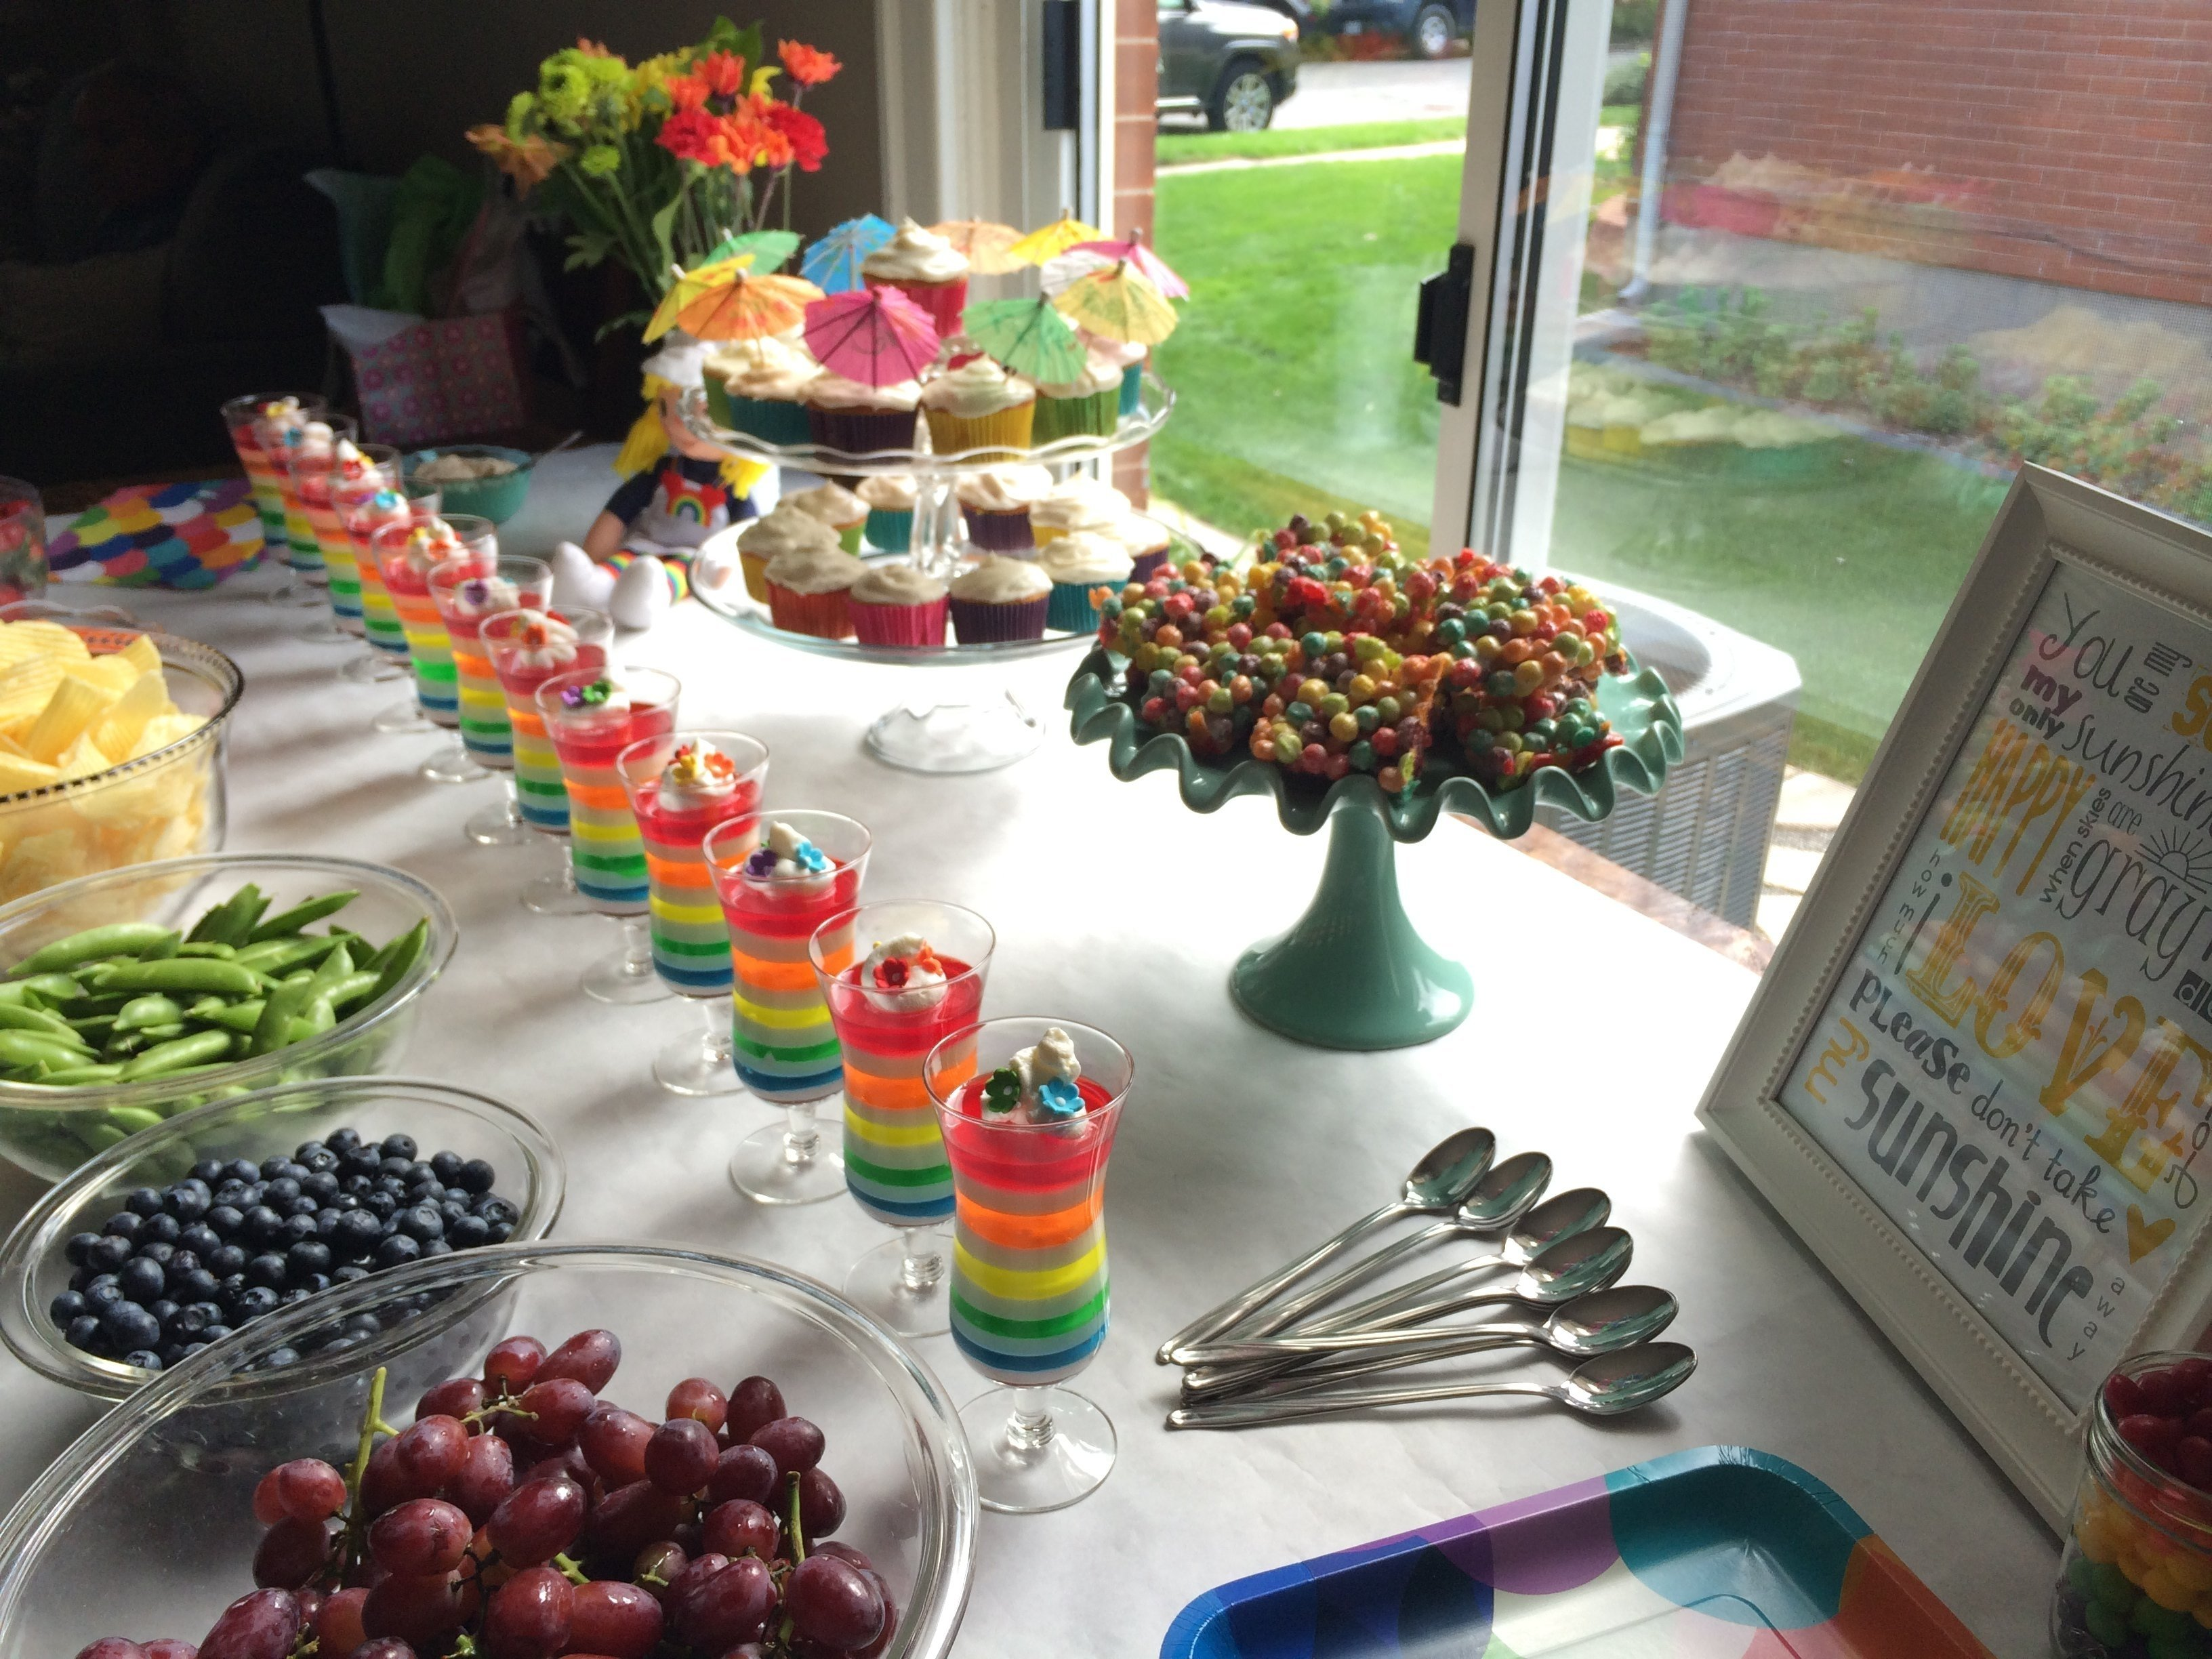 10 Wonderful Ideas For 4 Year Old Birthday Party Chic Inspiration Game